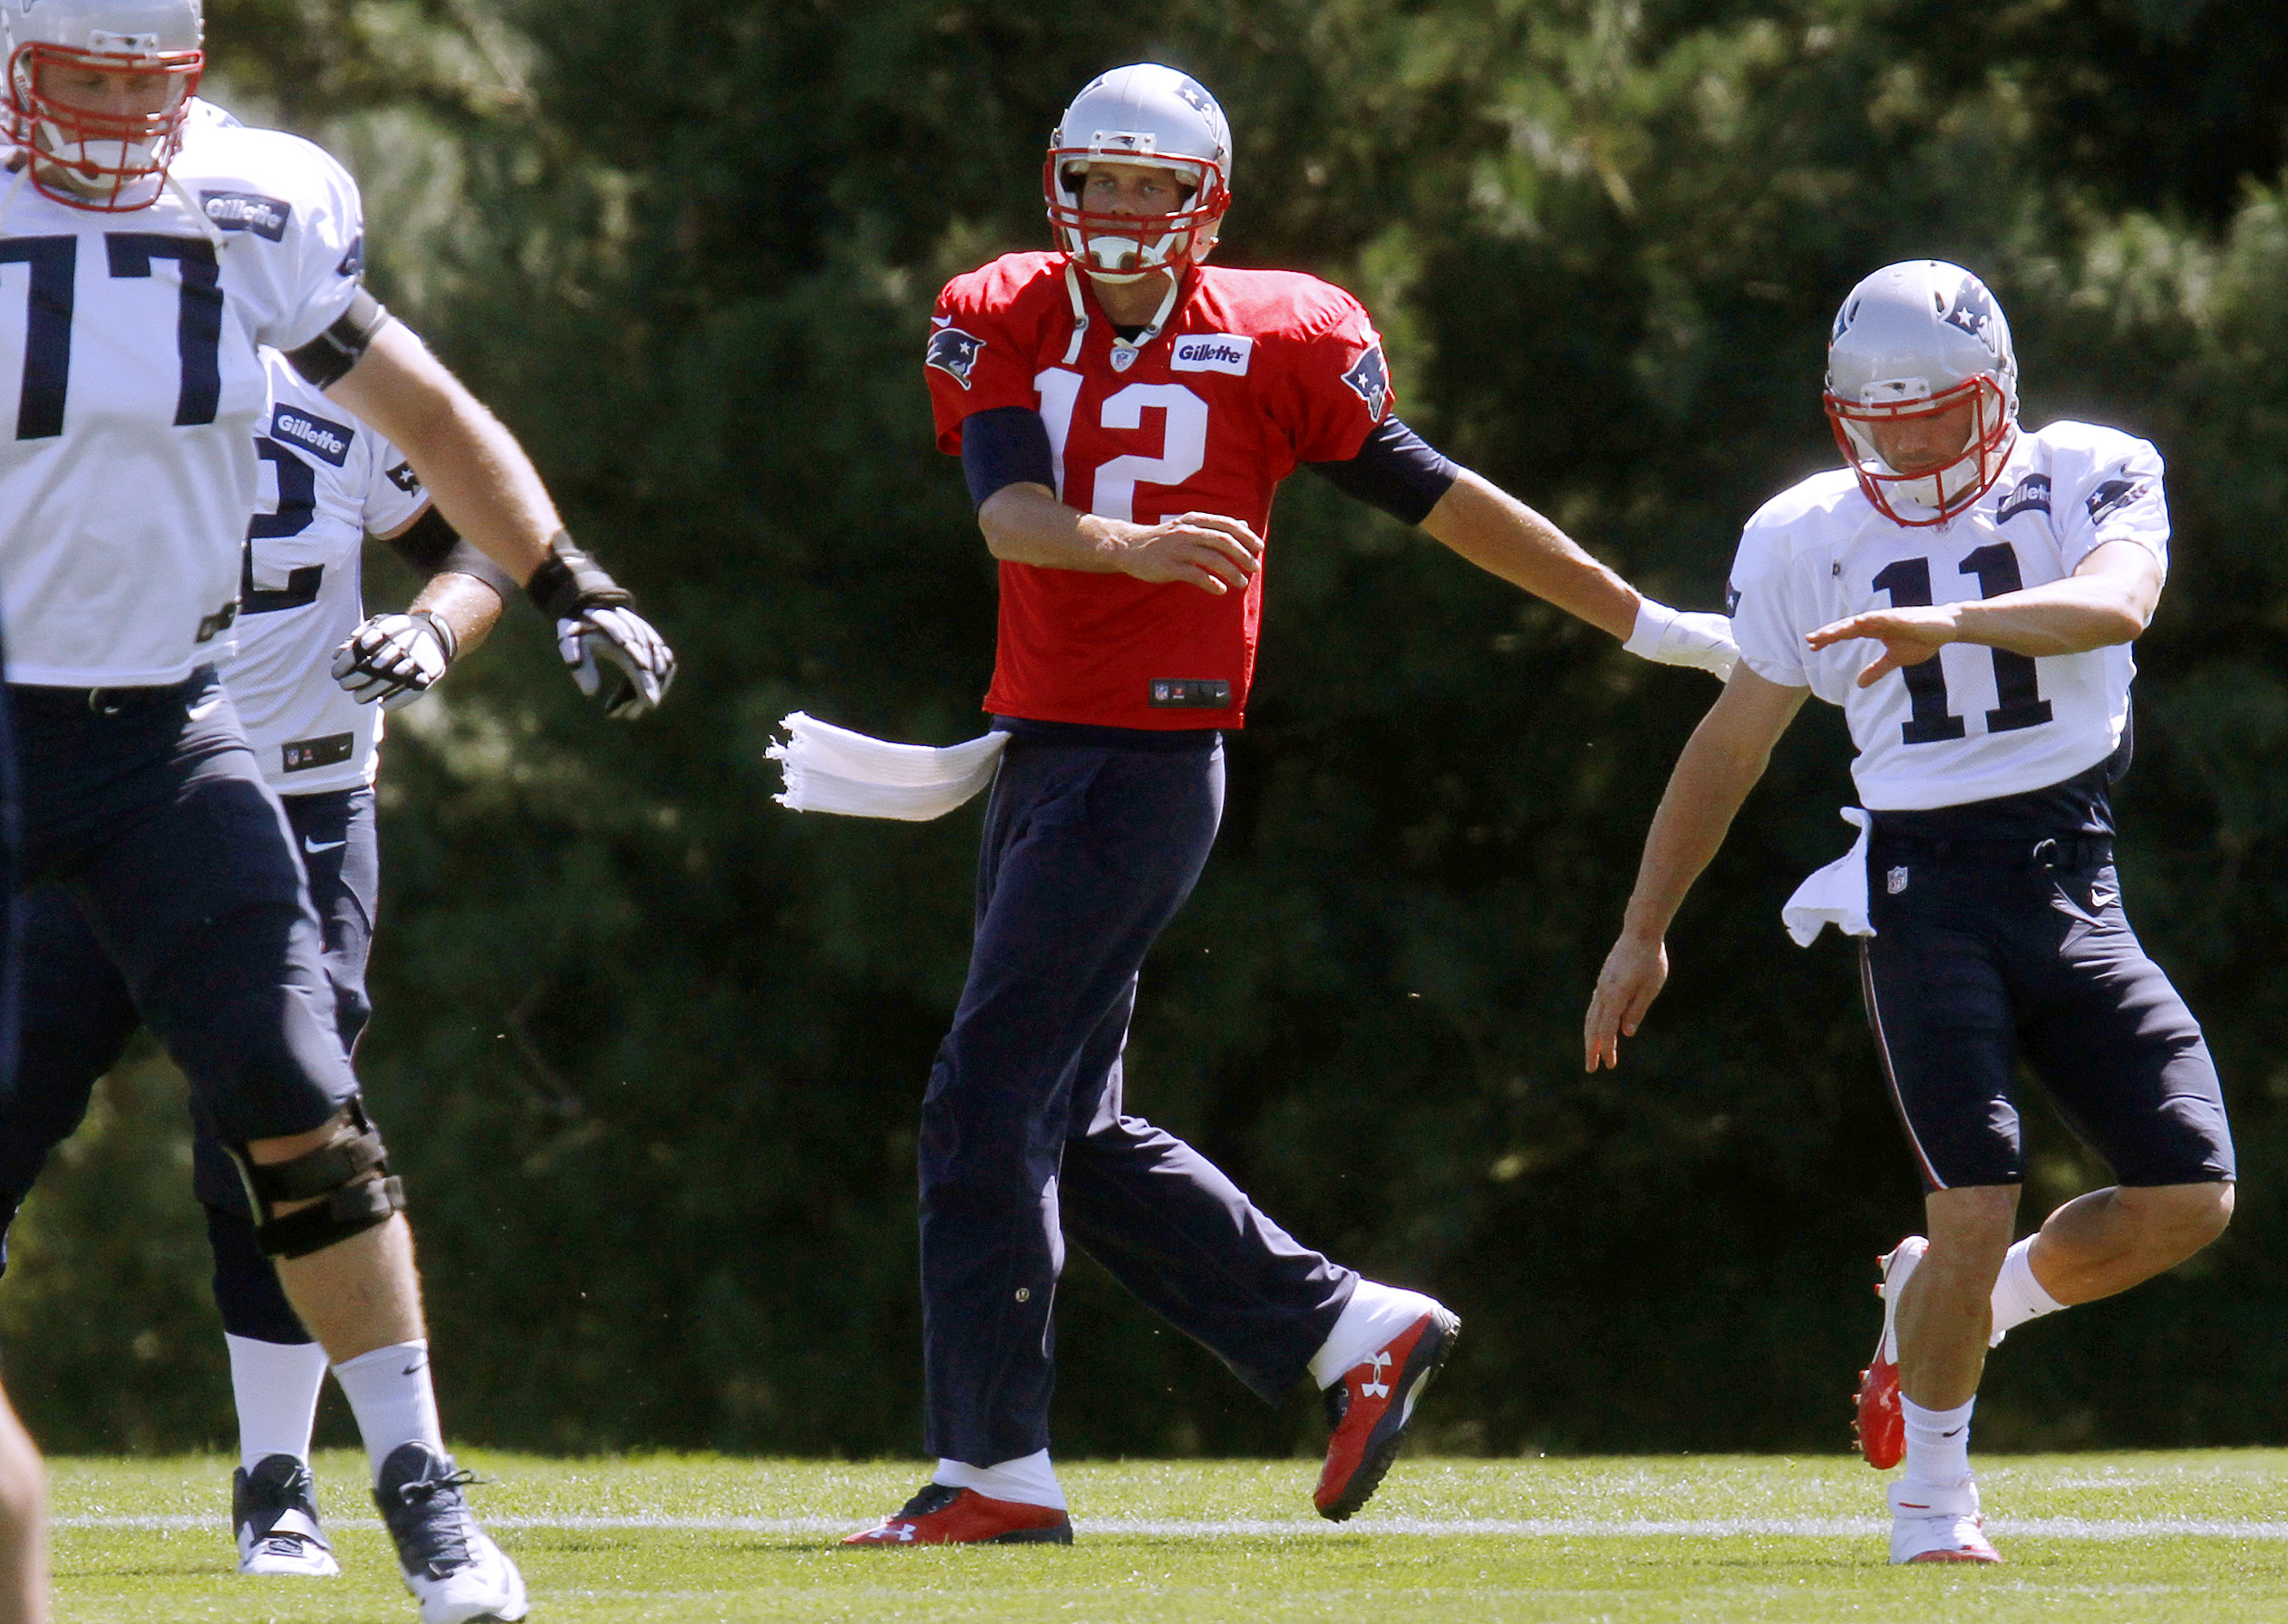 New England Patriots quarterback Tom Brady, center, warms up between tackle Nate Solder, left, and wide receiver Julian Edelman, right, at the beginning of NFL football practice, Saturday, Sept. 5, 2015, in Foxborough, Mass. A federal judge overturned Bra